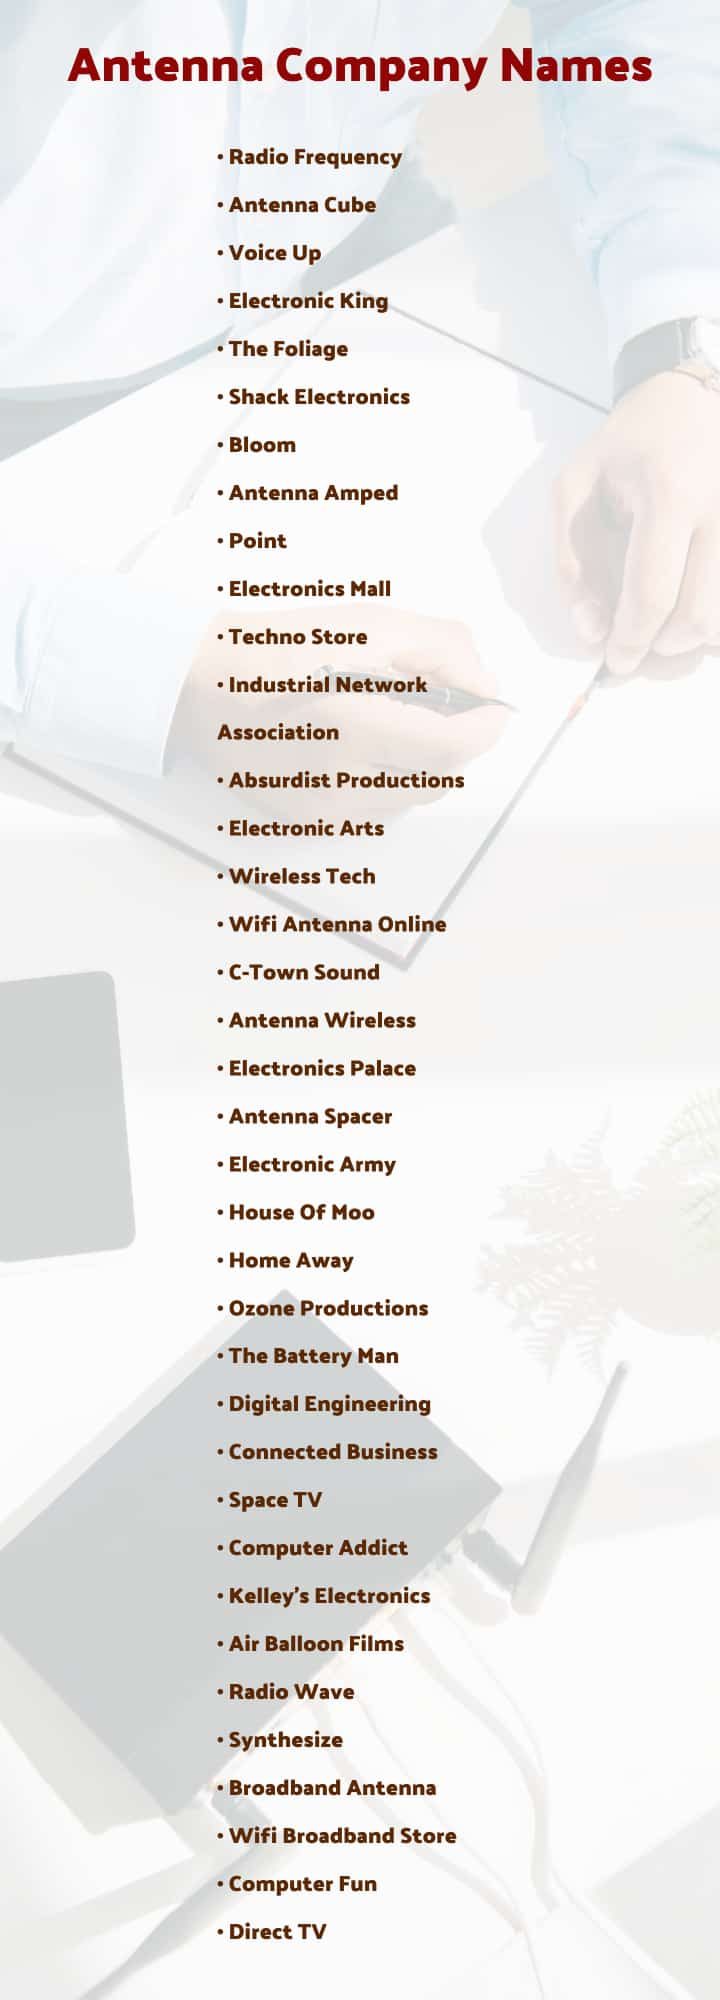 The best antenna company names list